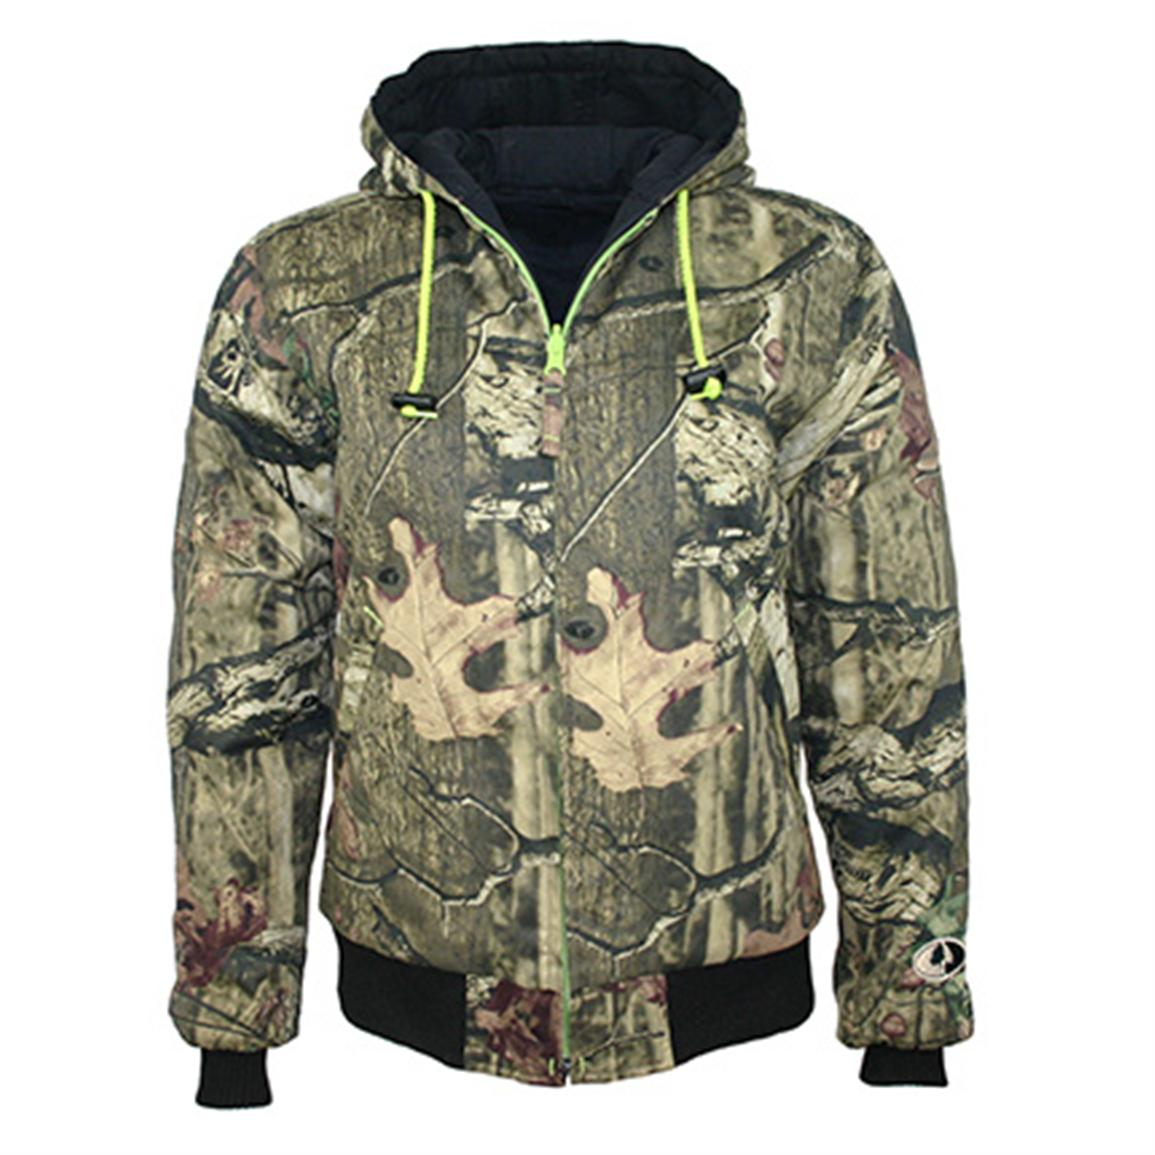 Women's Walls® Thinsulate™ Insulation Reversible Hooded Jacket, Camo Side